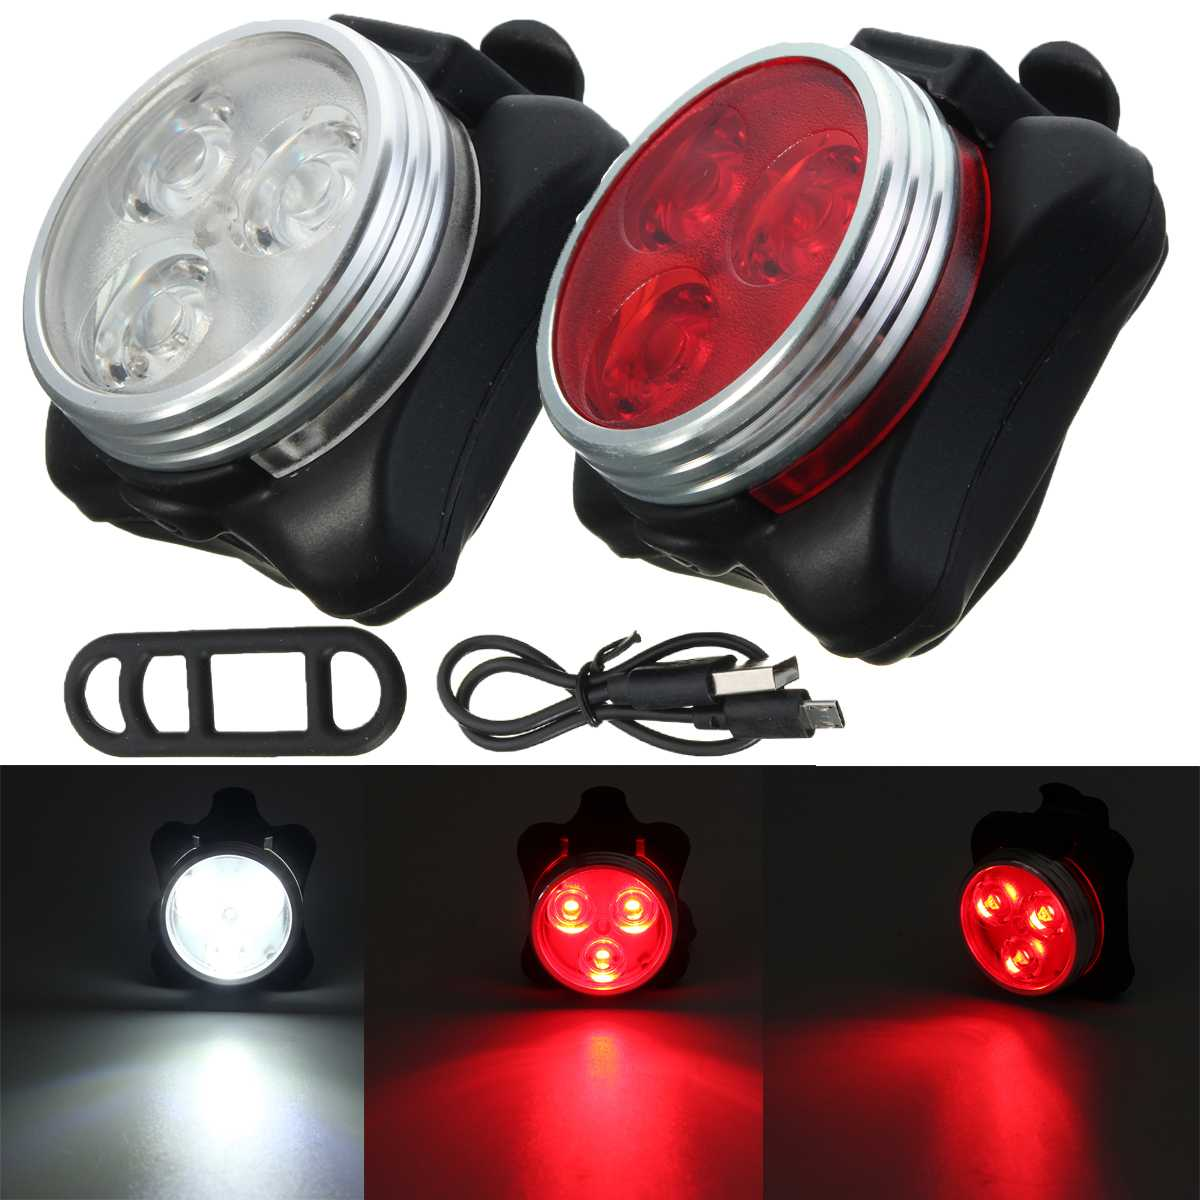 Outerdo Bicycle LED Front Light Taillight USB Rechargeable 3 LED Head Cycling Bike Front Rear Tail Clip Safe Warning Light Lamp